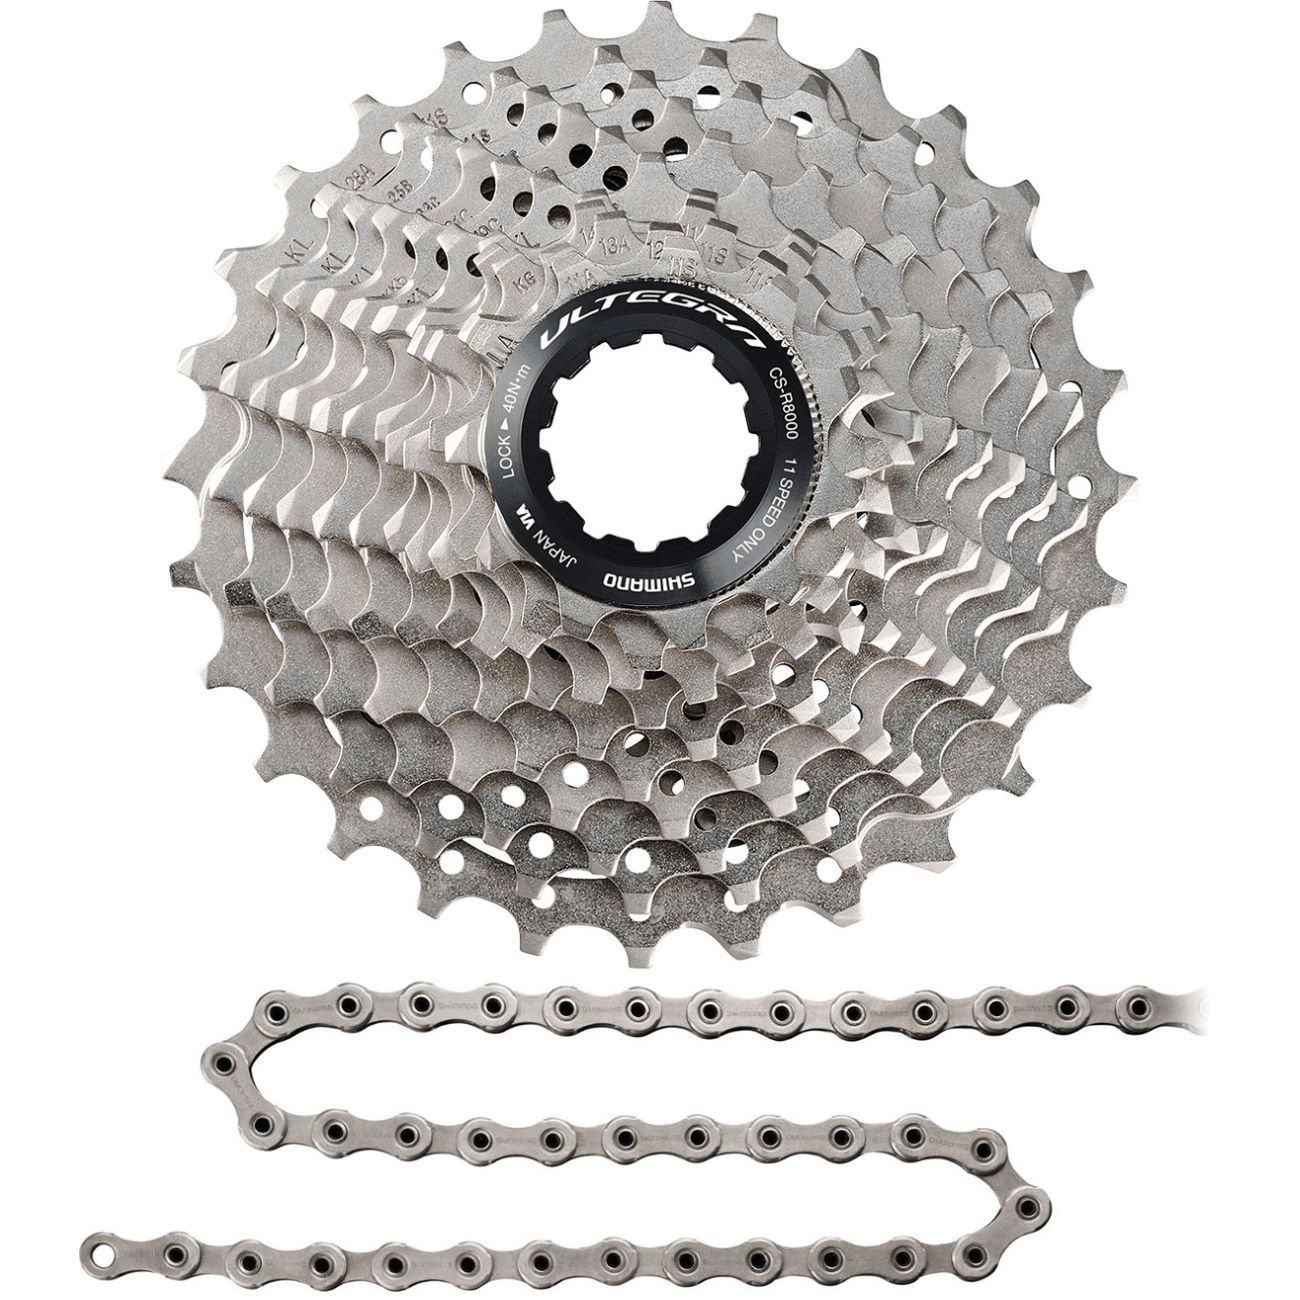 Shimano Components > Cassettes & Cables Shimano Ultegra R8000 Cassette 11-28 & KMC X11.93 OEM Chain